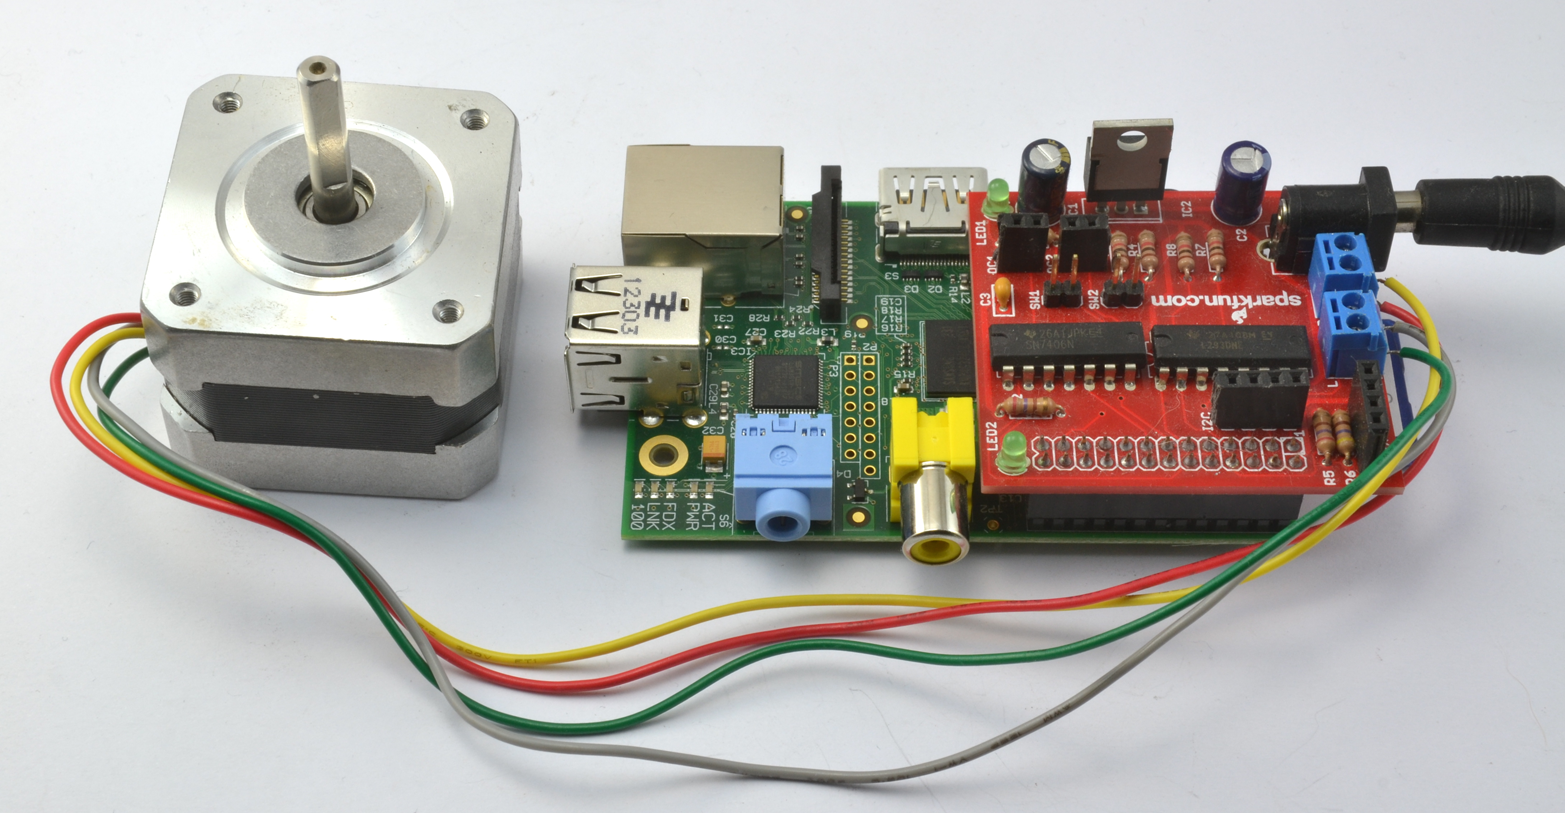 Razzpisampler for Controlling a stepper motor